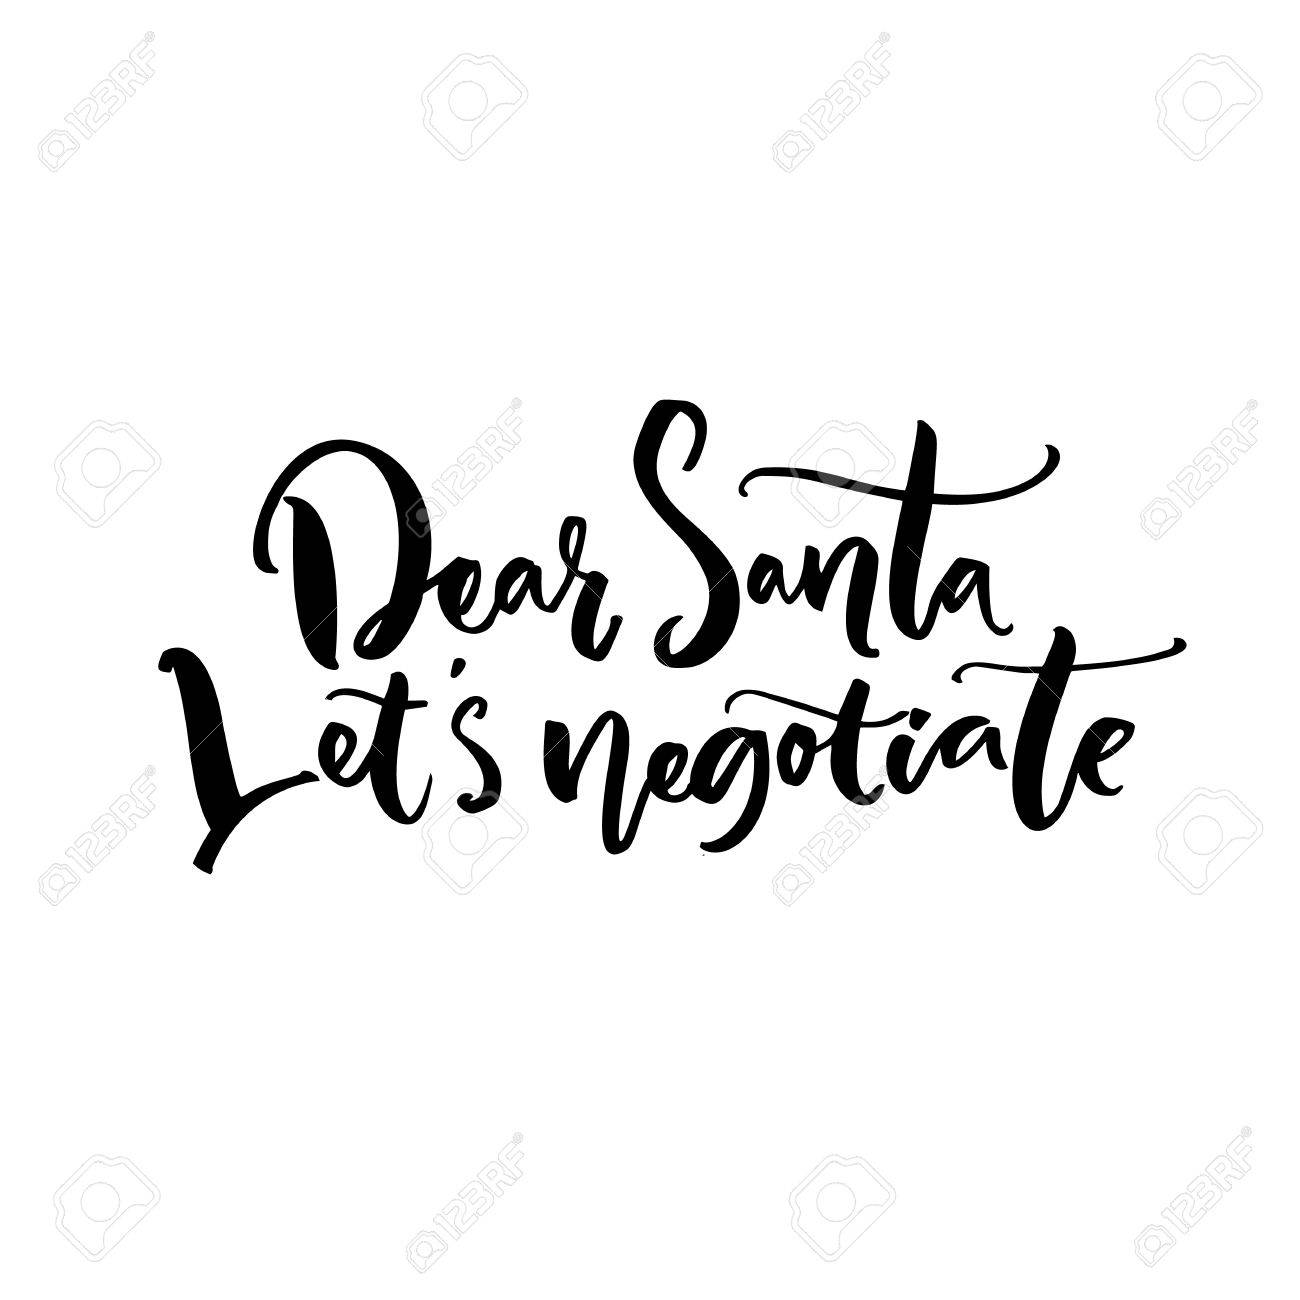 Christmas Letters.Dear Santa Let S Negotiate Funny Calligraphy Phrase For Christmas